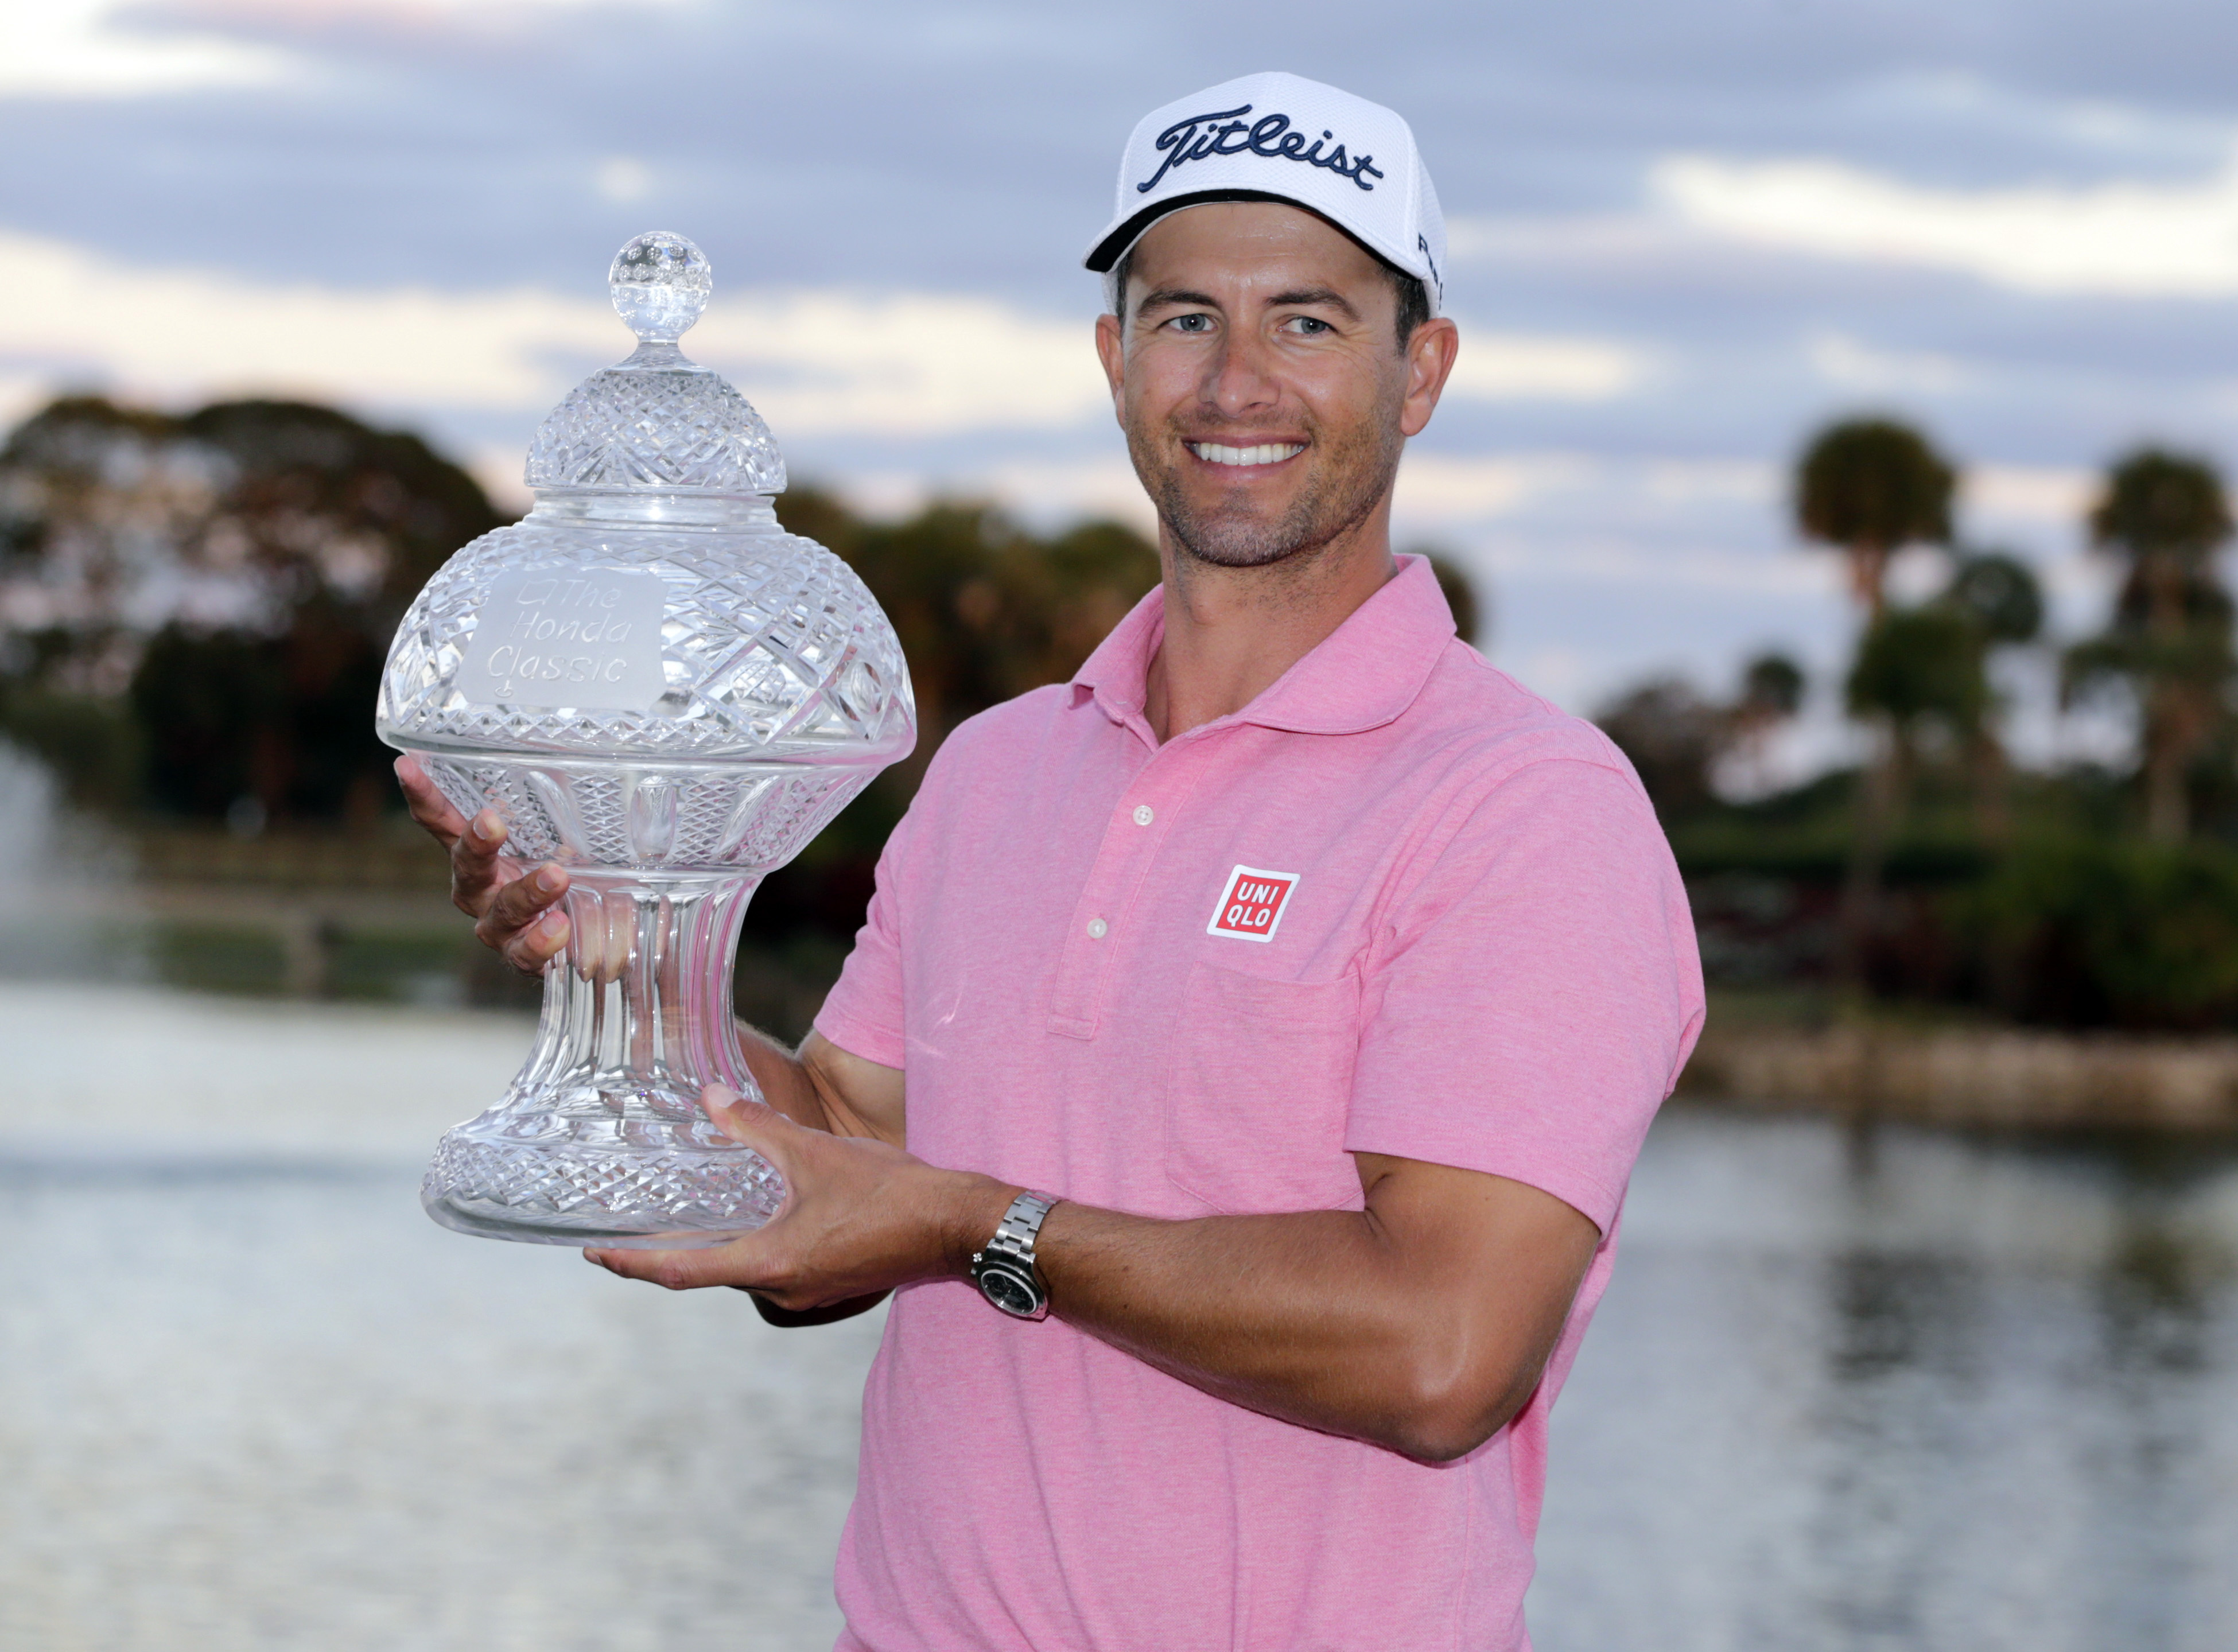 Adam Scott, of Australia, holds the trophy after winning the Honda Classic golf tournament with a 9-under-par, Sunday, Feb. 28, 2016, in Palm Beach Gardens, Fla. (AP Photo/Lynne